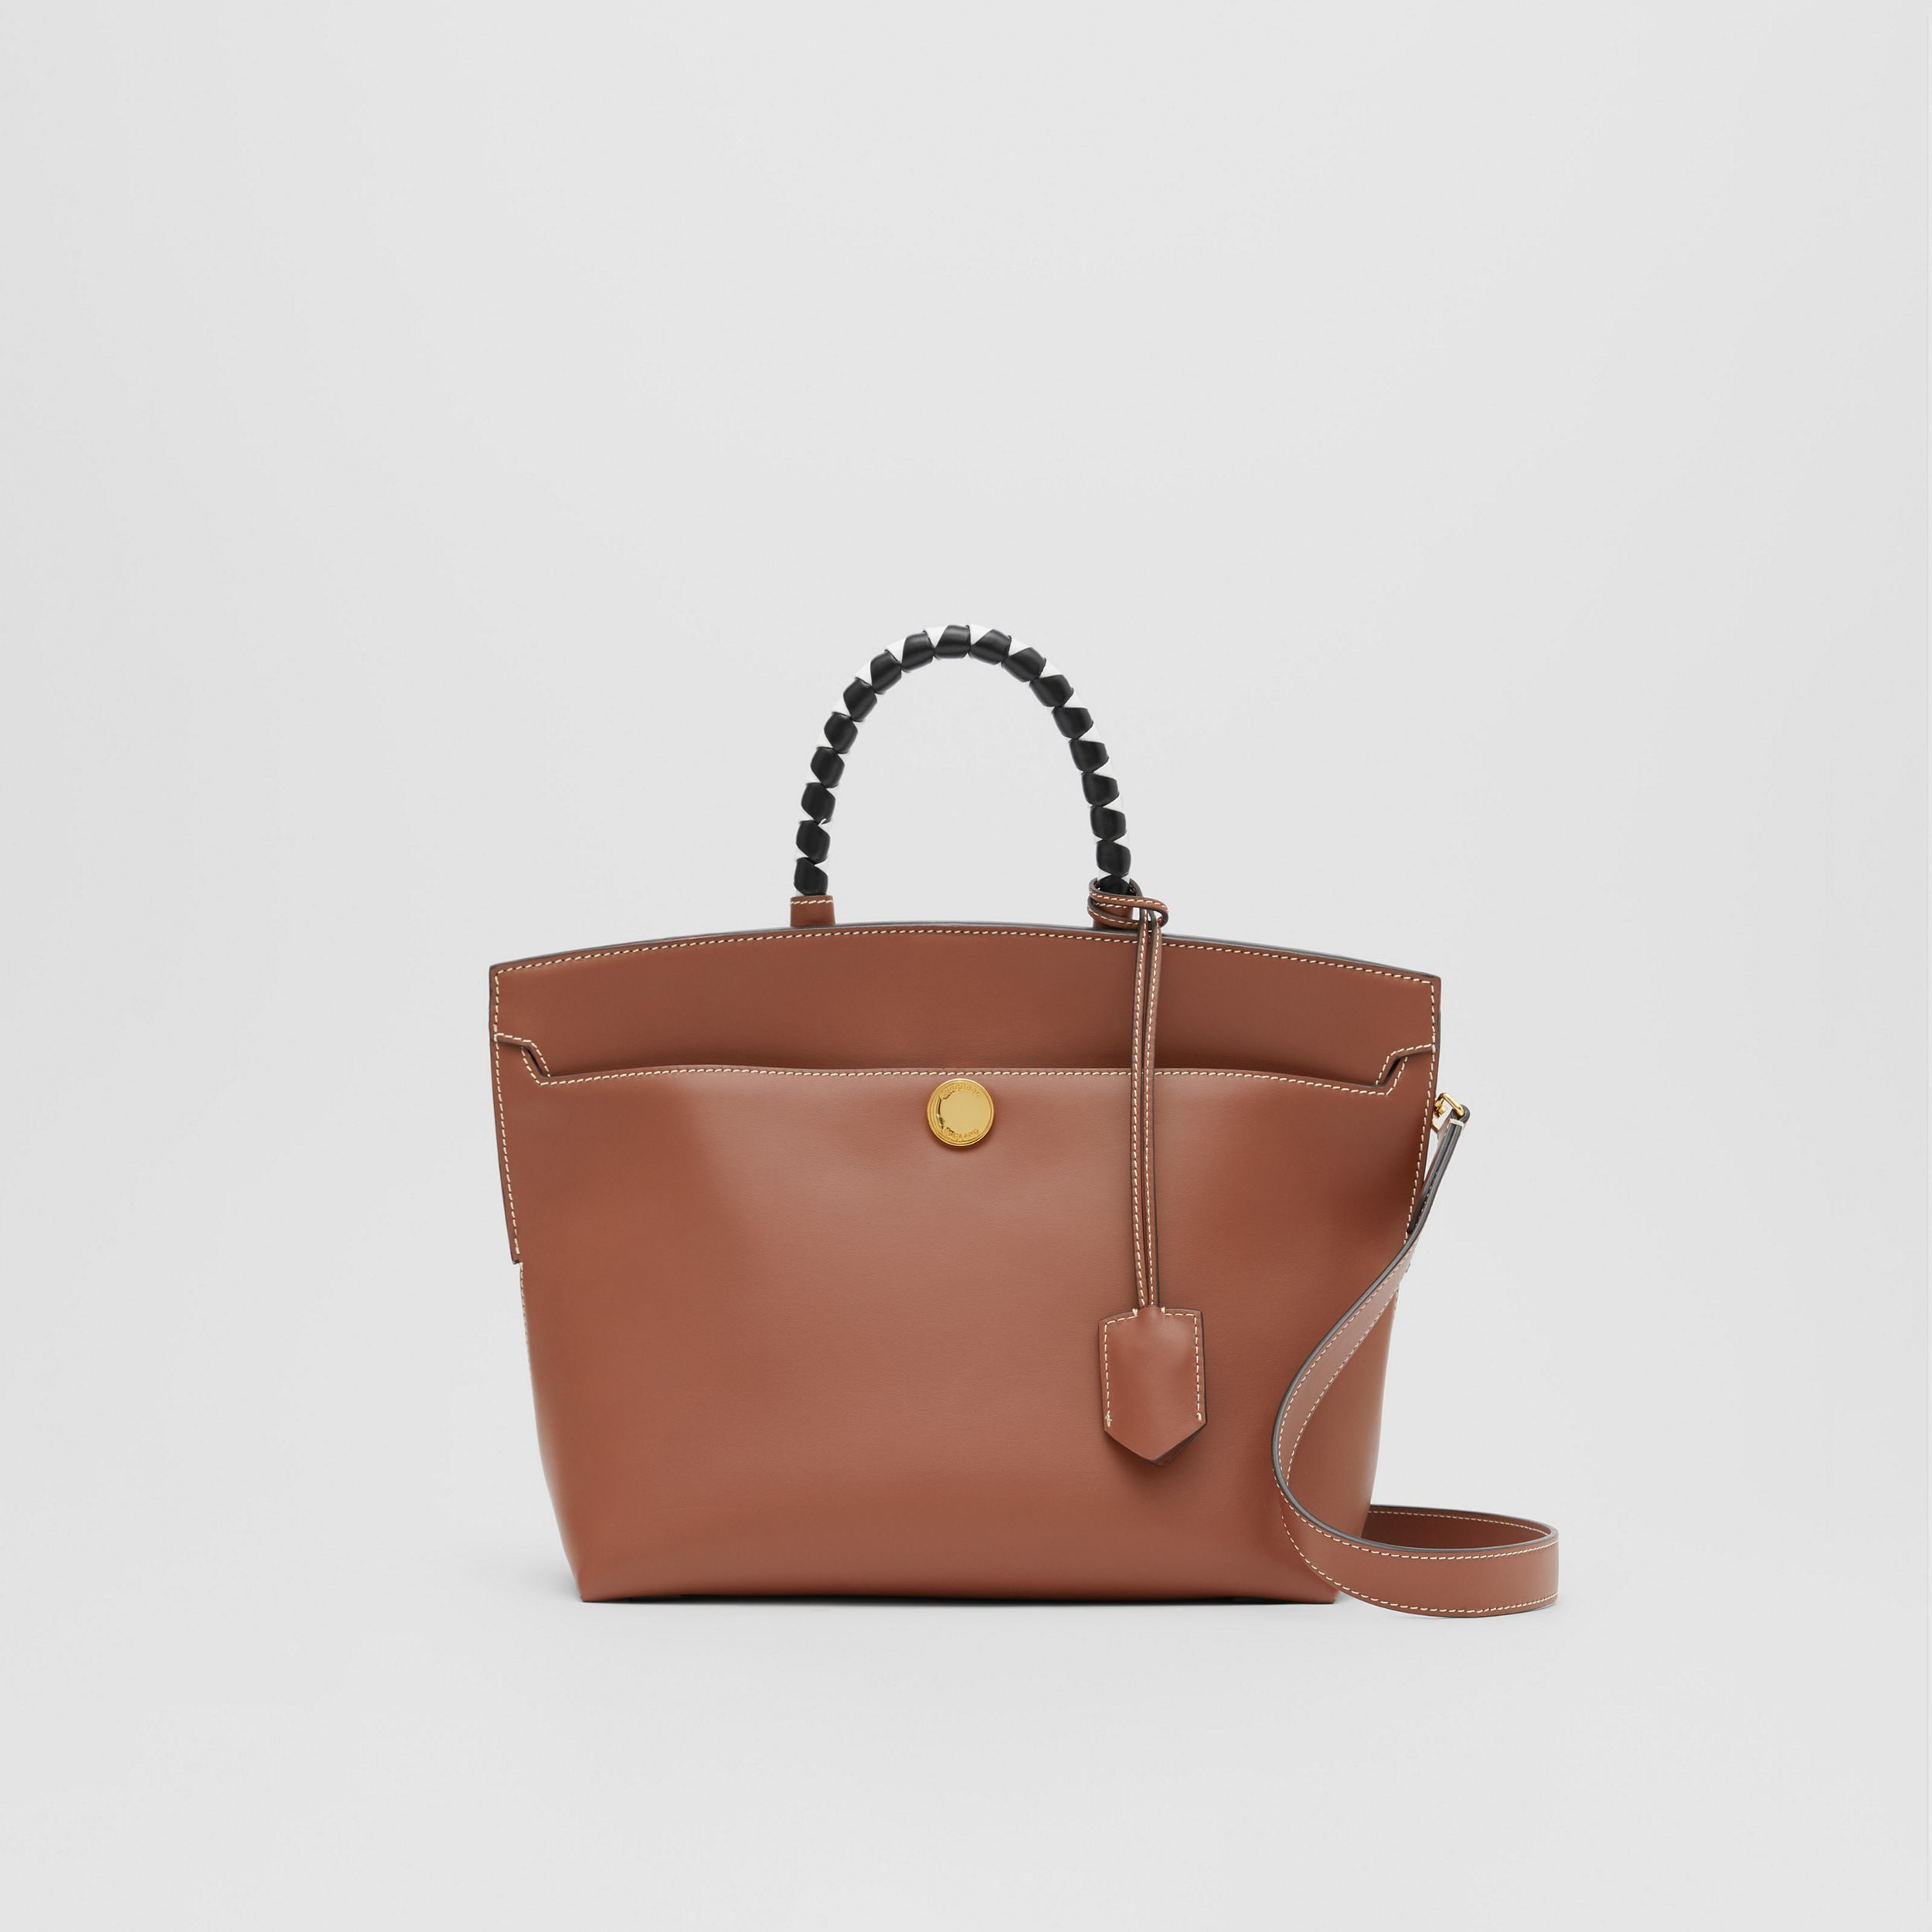 Small Leather Society Top Handle Bag in Tan - Women | Burberry - 1